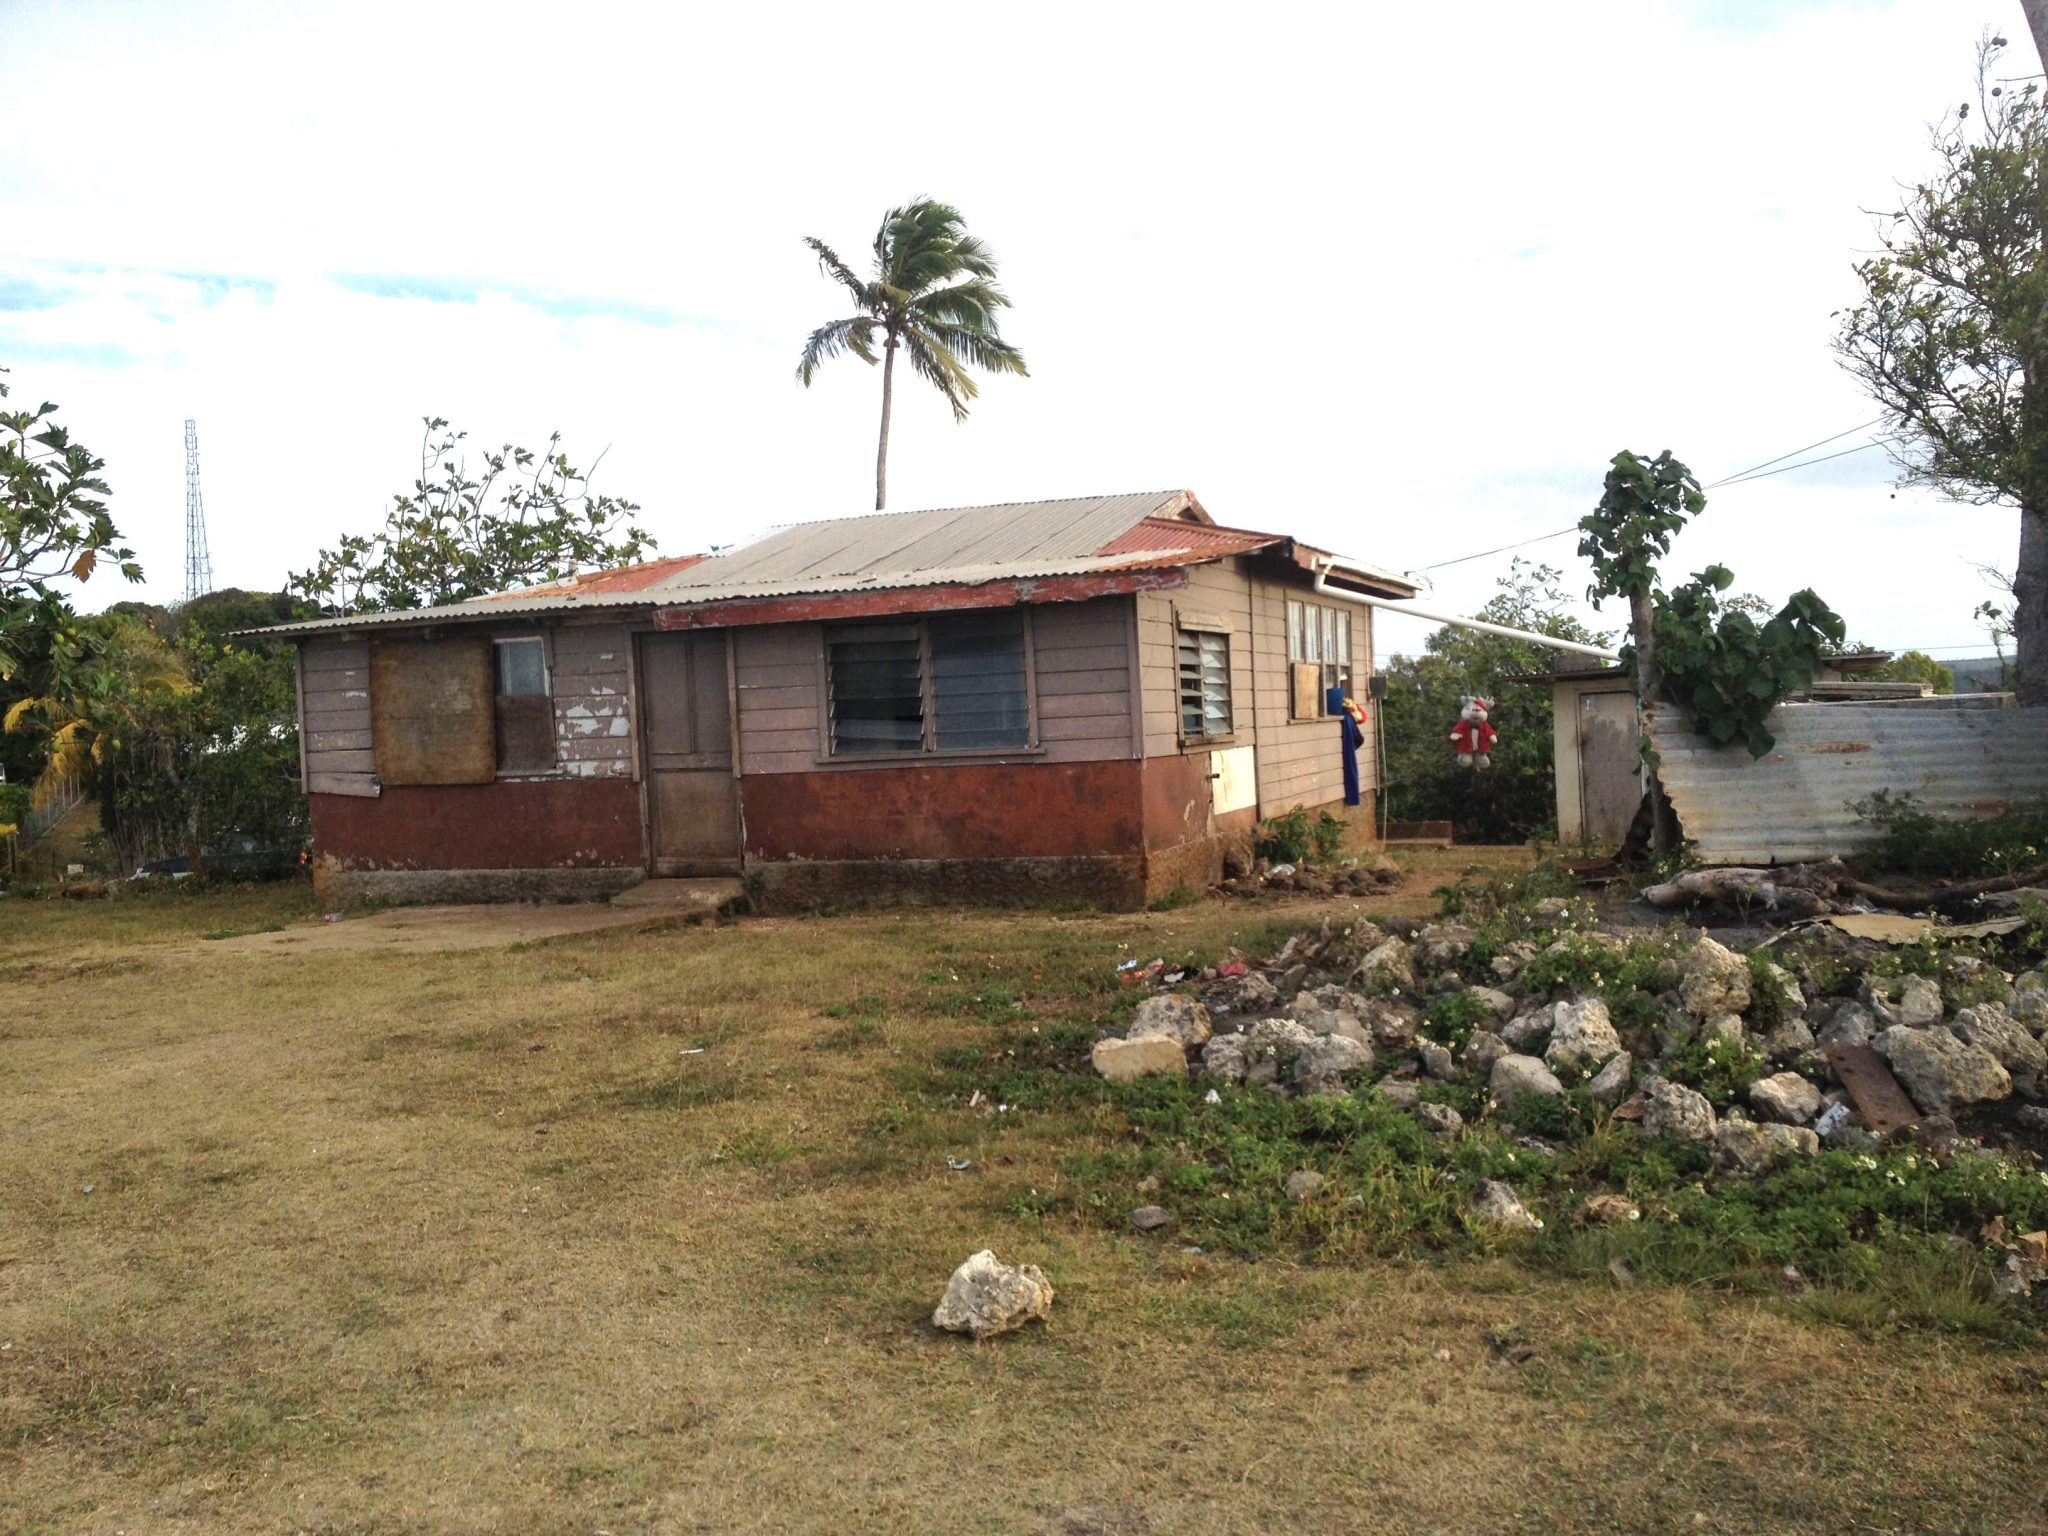 27. Another modest home on the hill top overlooking the South Pacific Ocean. Cyclones harass the island periodocally